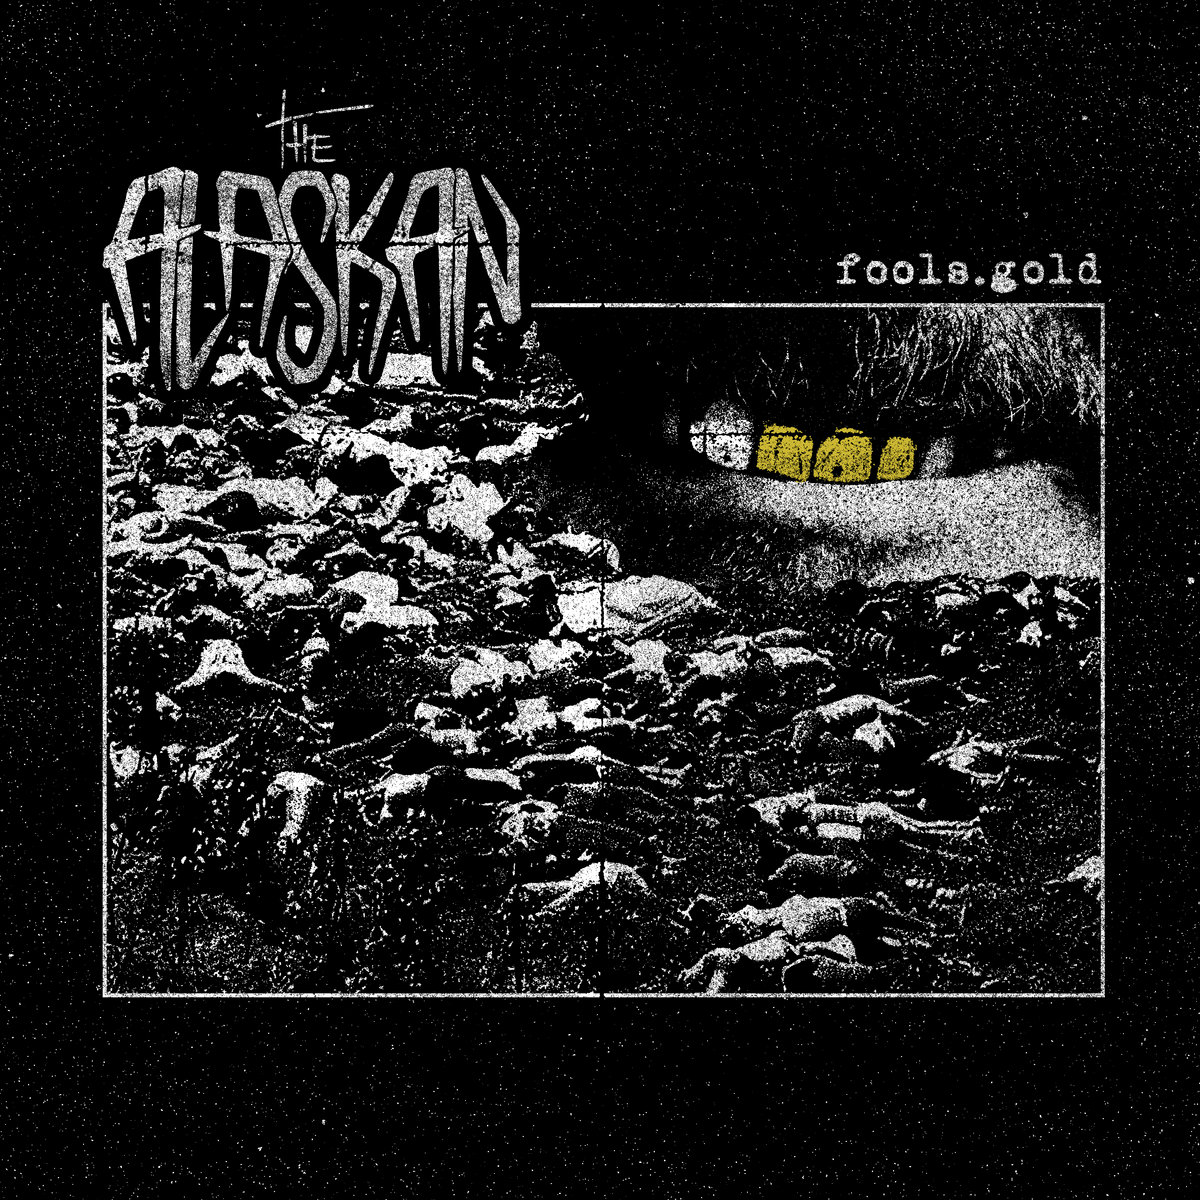 The Alaskan – Fools.Gold [EP] (2018)